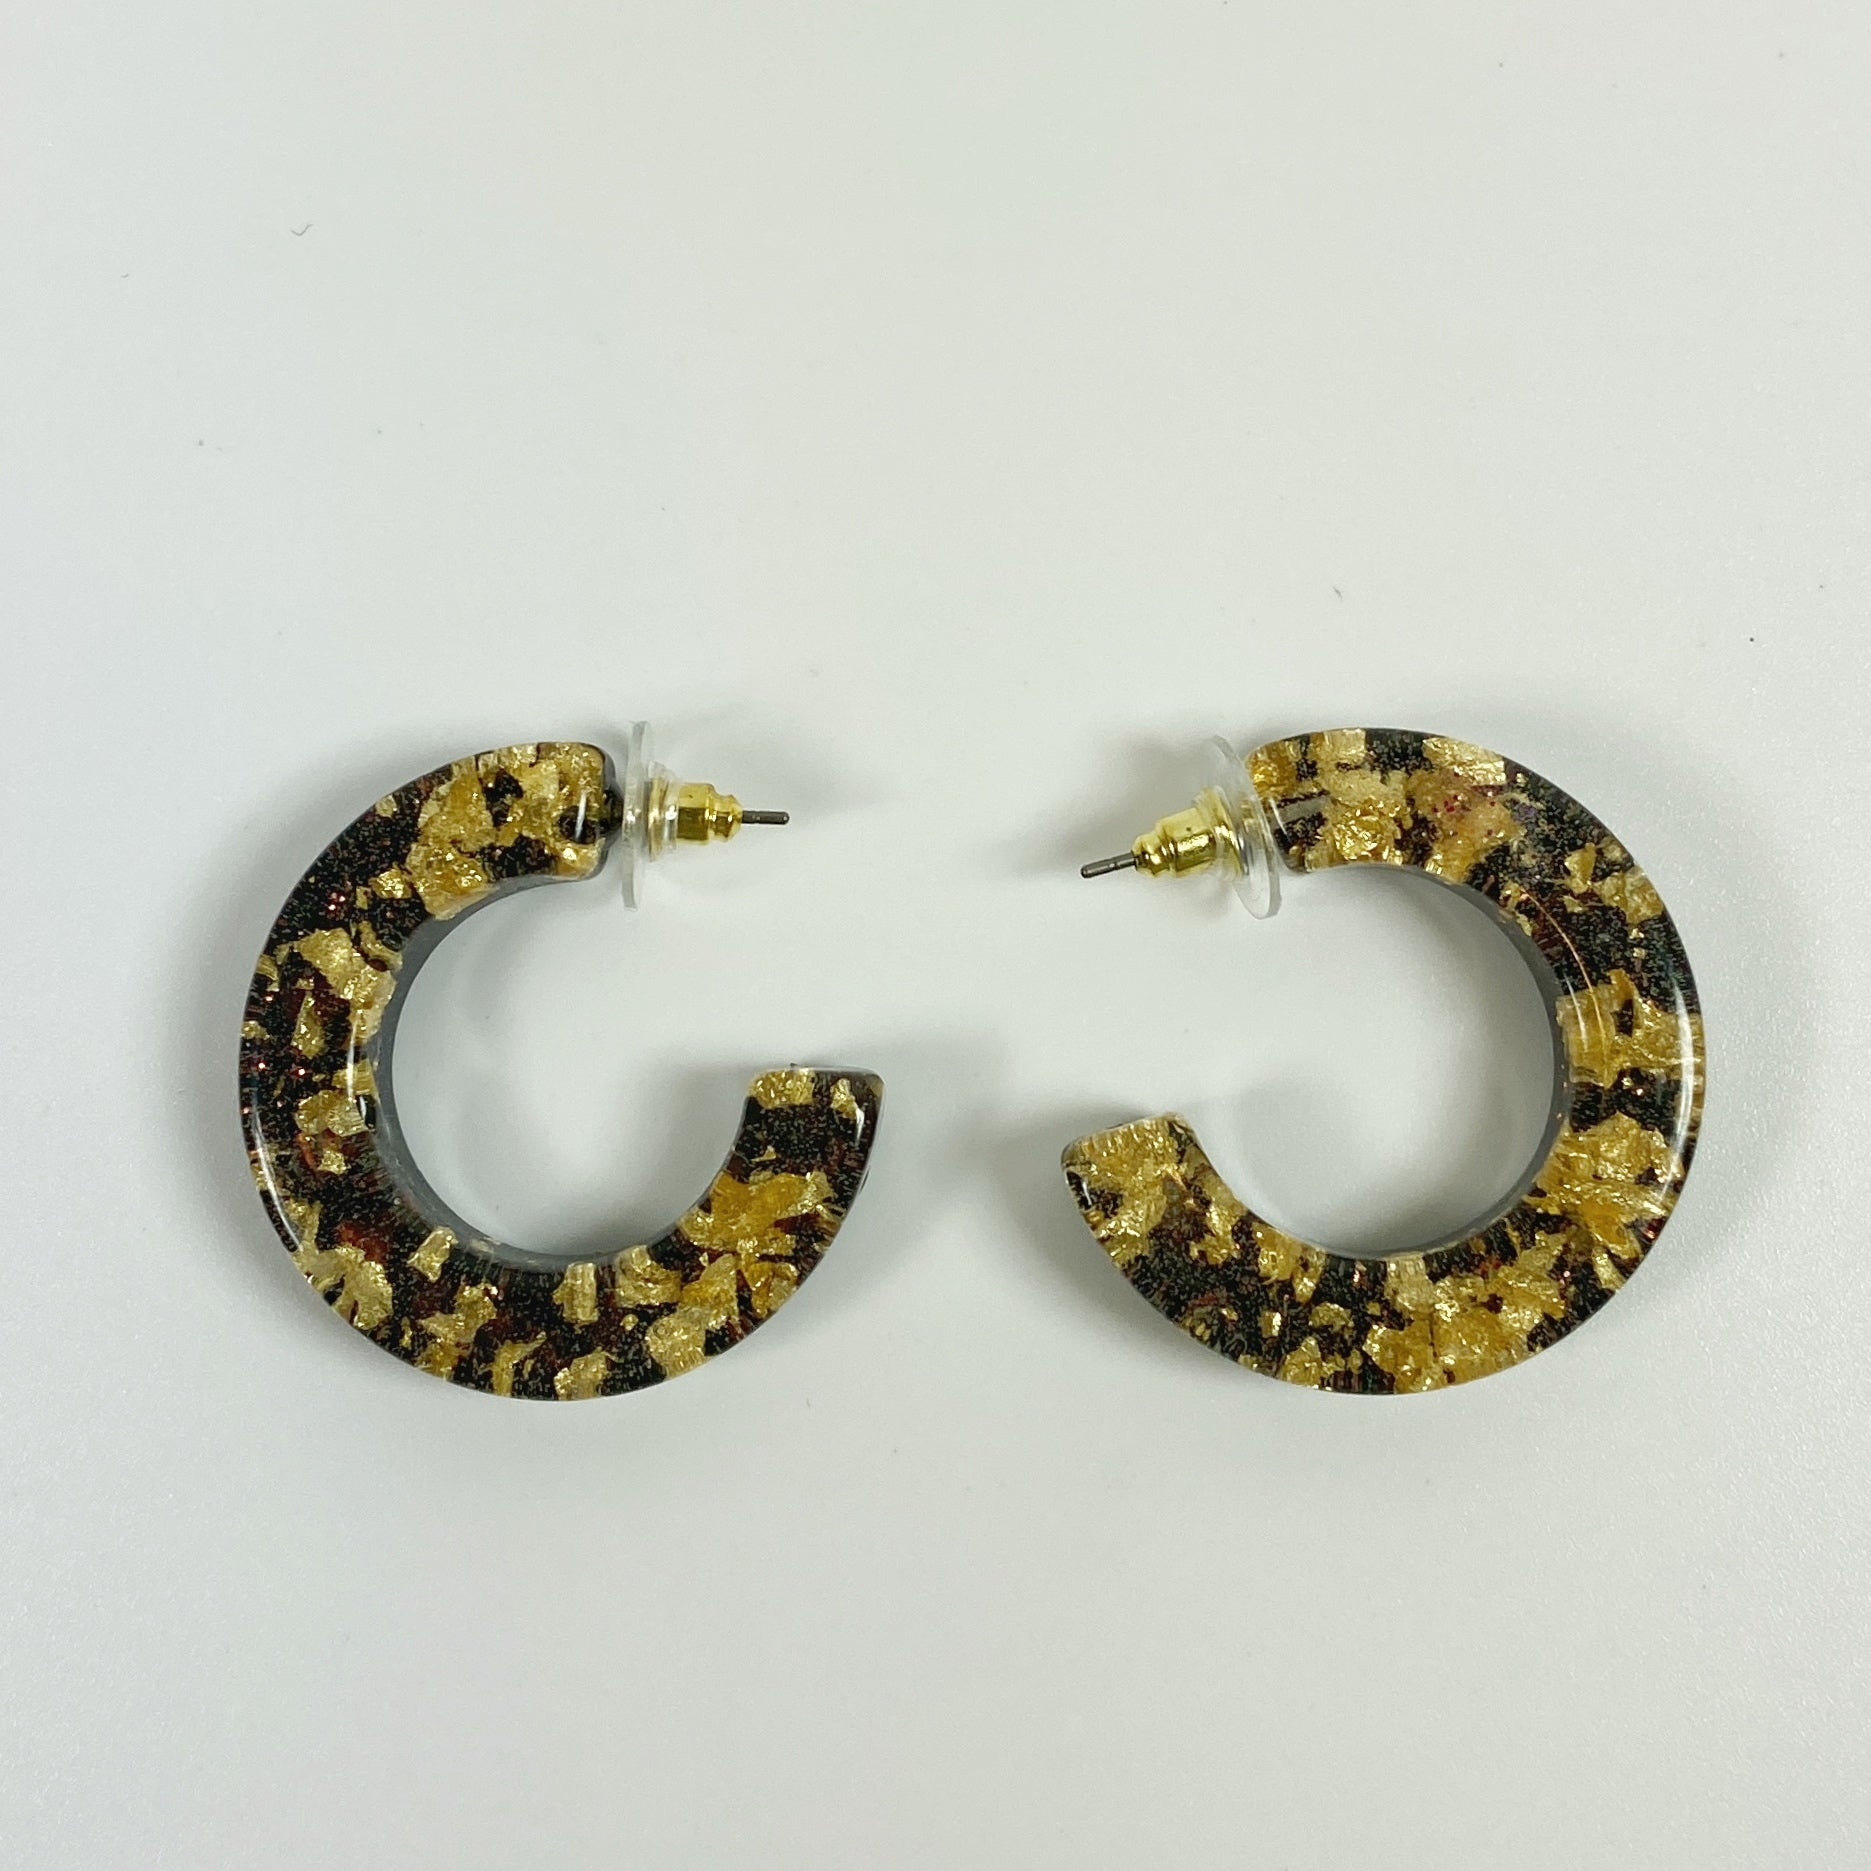 Gold Flakes over Coal C-Hoop Resin Earrings front view